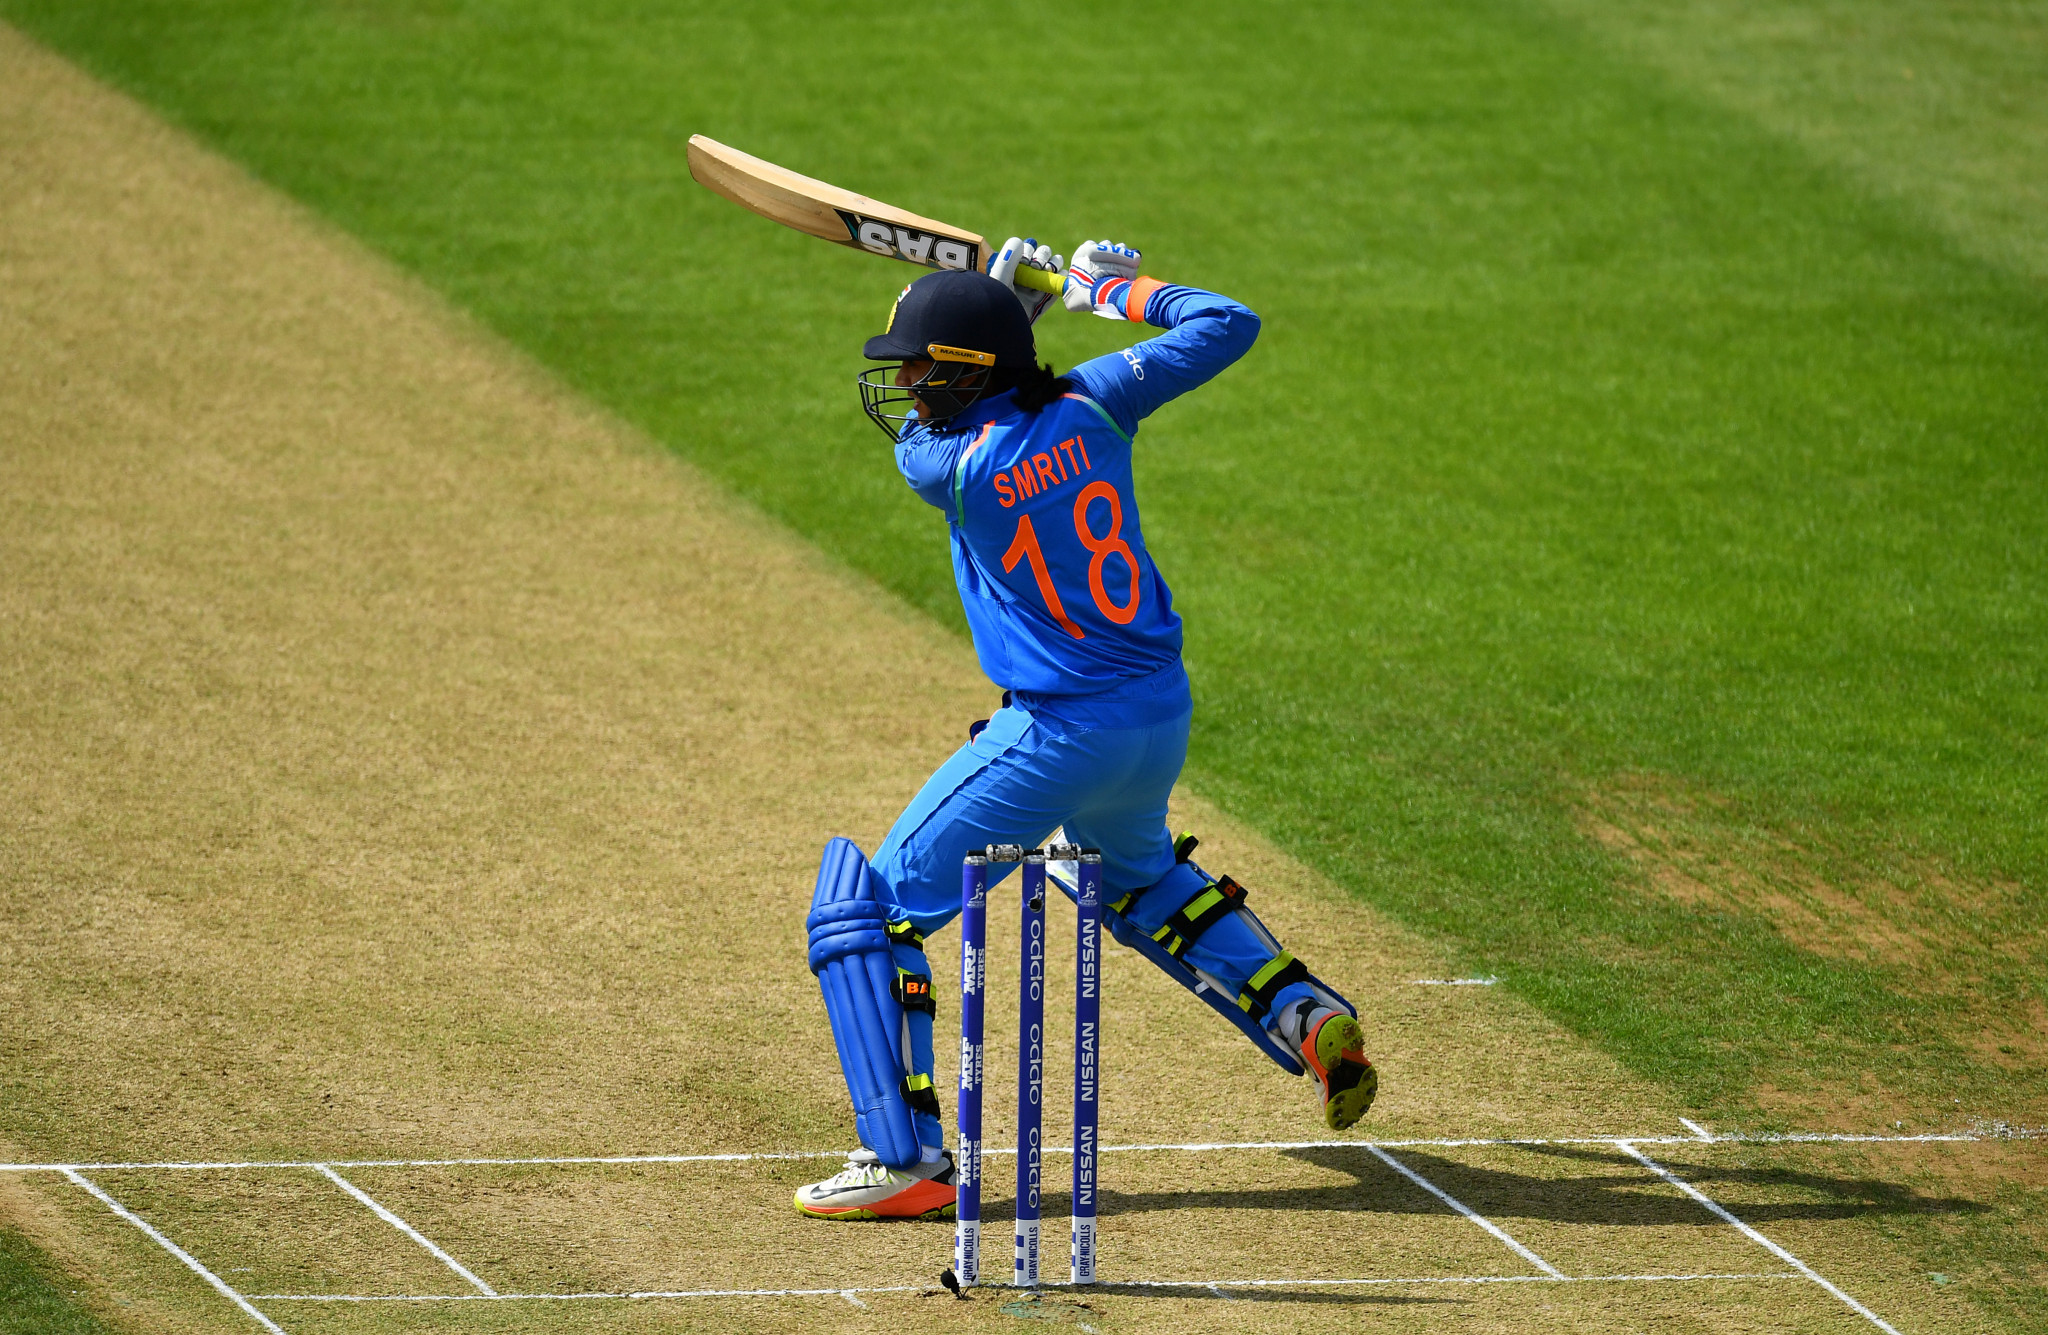 India's Smriti Mandhana has been named as the International Cricket Council's Women's Cricketer of the Year ©Getty Images